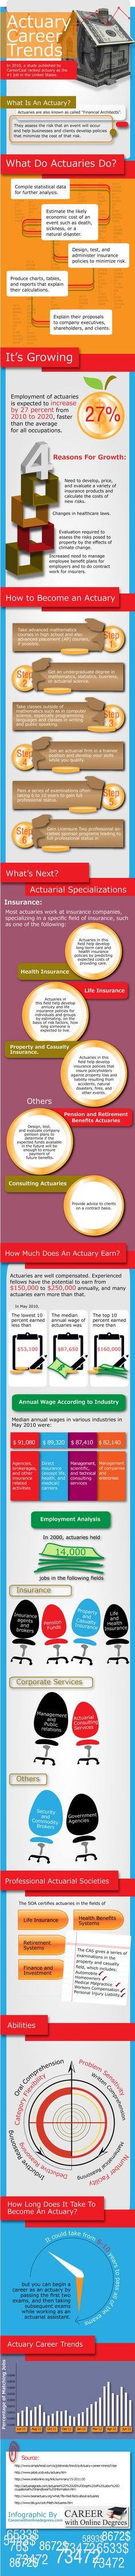 10 steps to changing your career lost career and its meaning actuary career career onlinedegrees